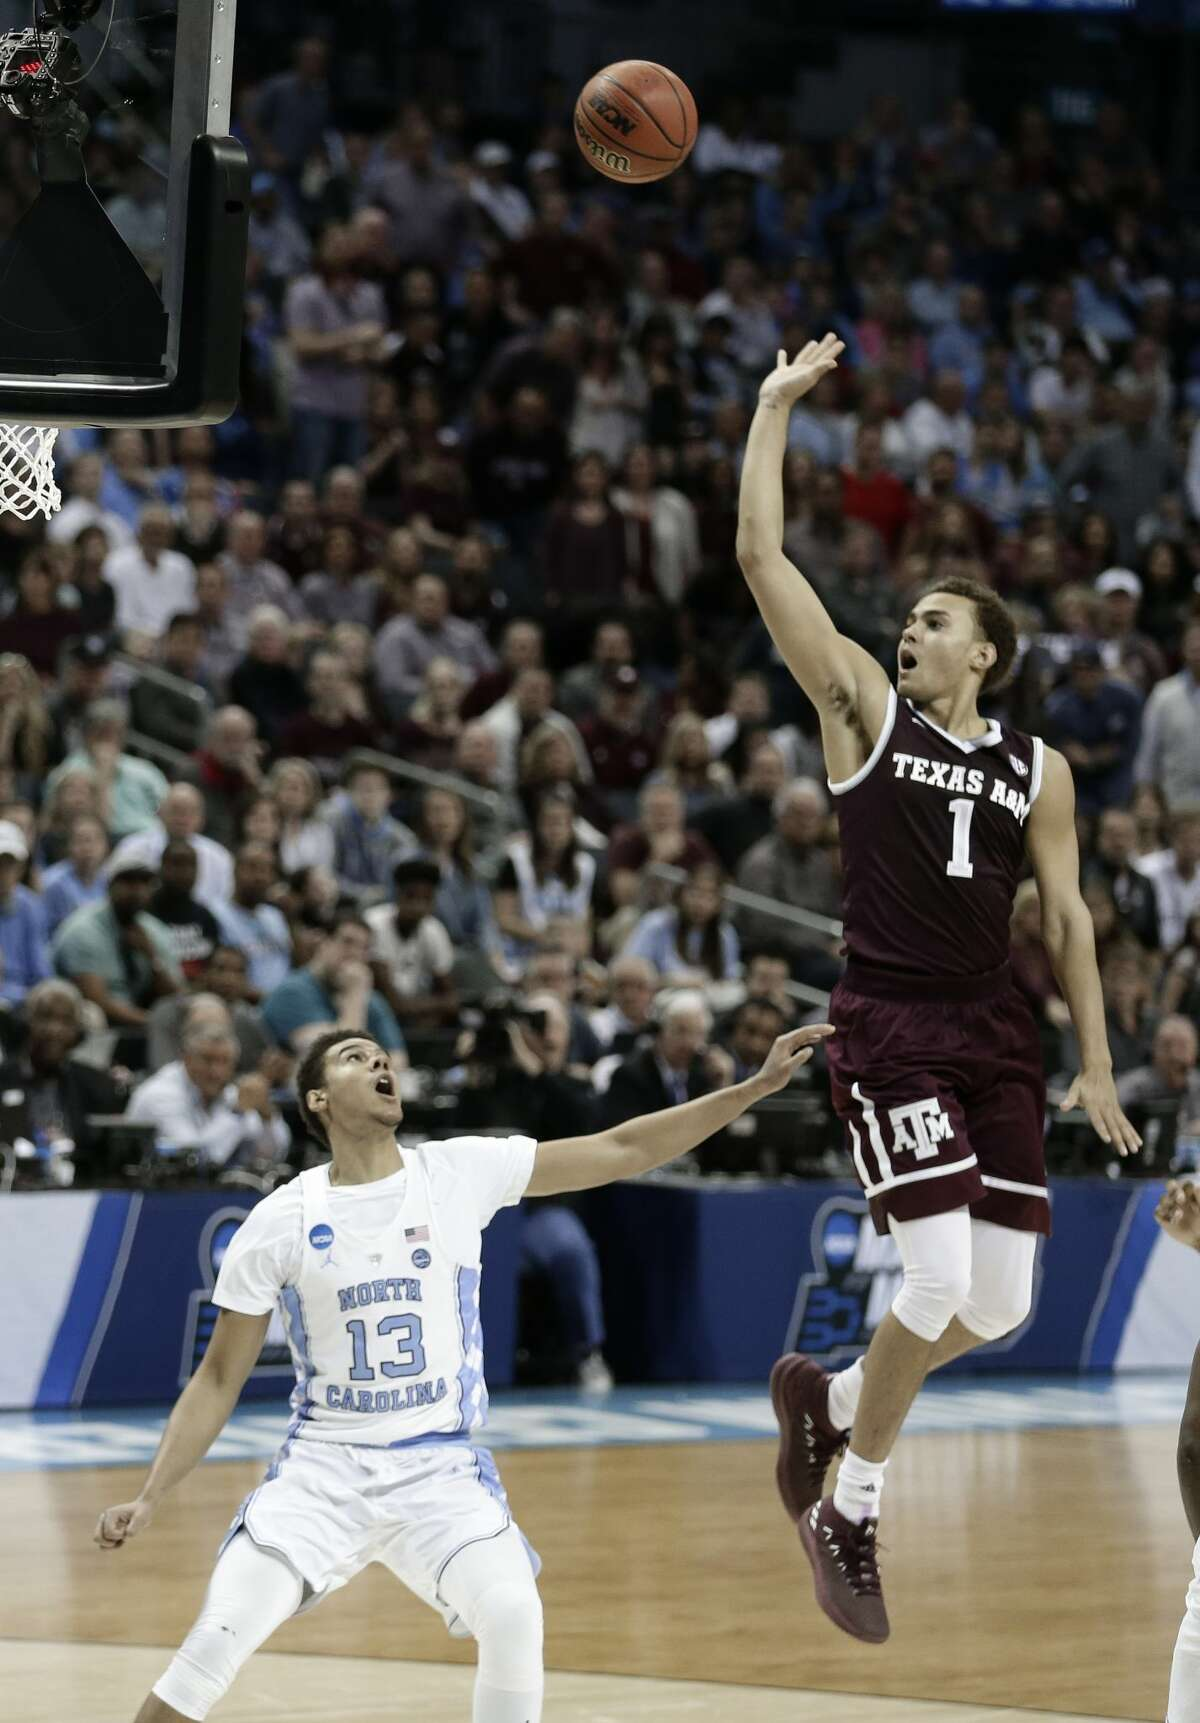 Texas A&M's DJ Hogg (1) shoots over North Carolina's Cameron Johnson (13) during the first half of a second-round game in the NCAA men's college basketball tournament in Charlotte, N.C., Sunday, March 18, 2018. (AP Photo/Gerry Broome)